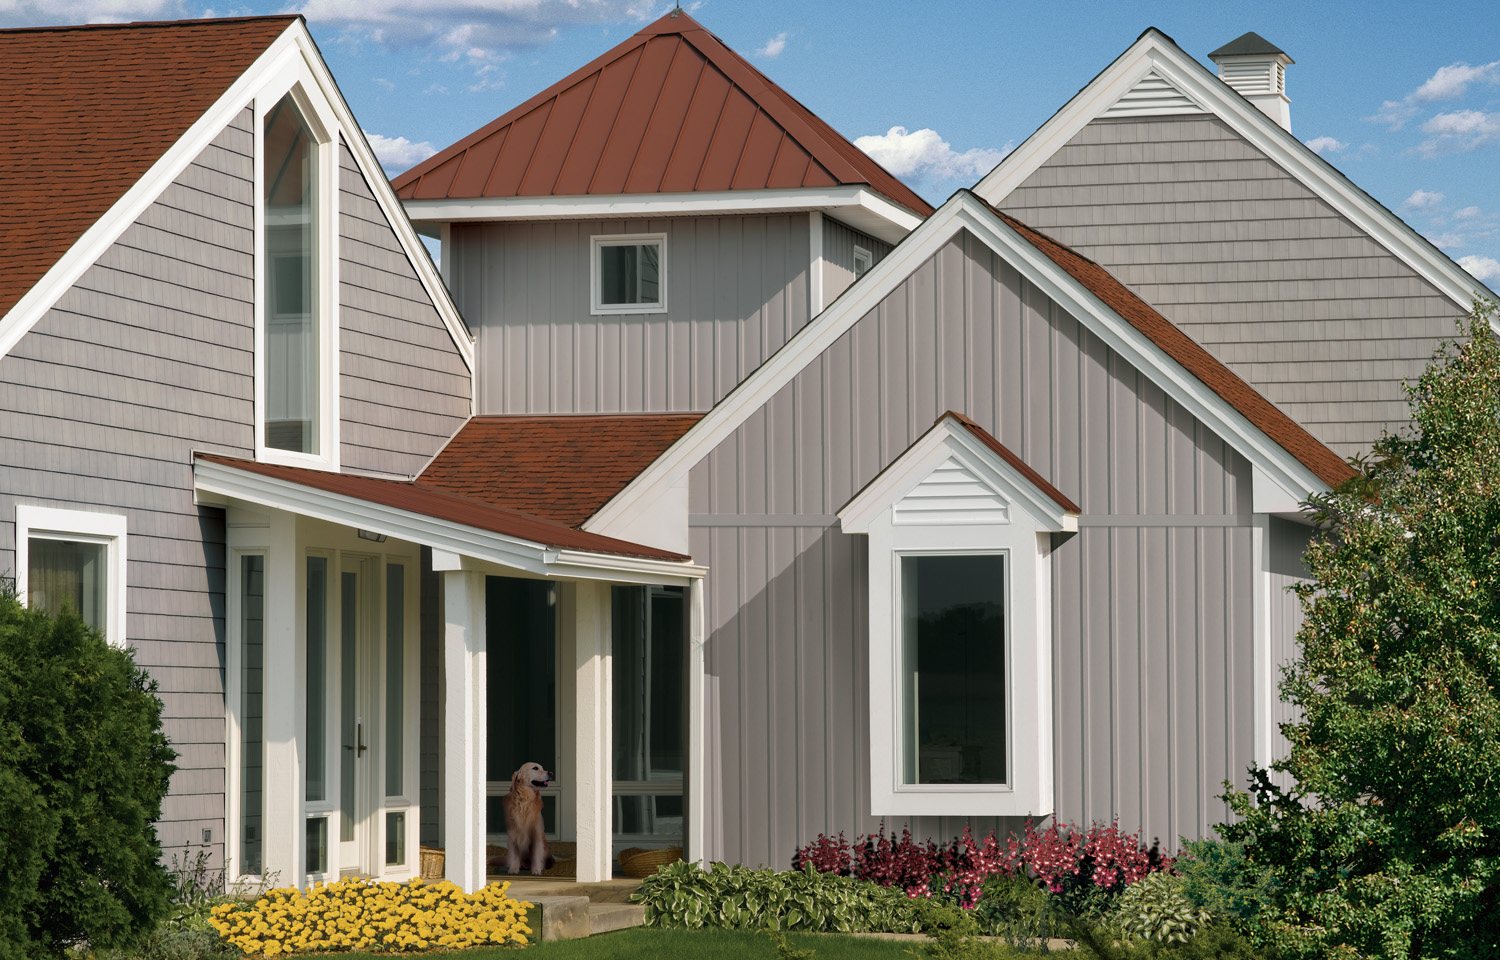 house siding colors 28 of the most popular optionsTaupe House With A Red Roof #5